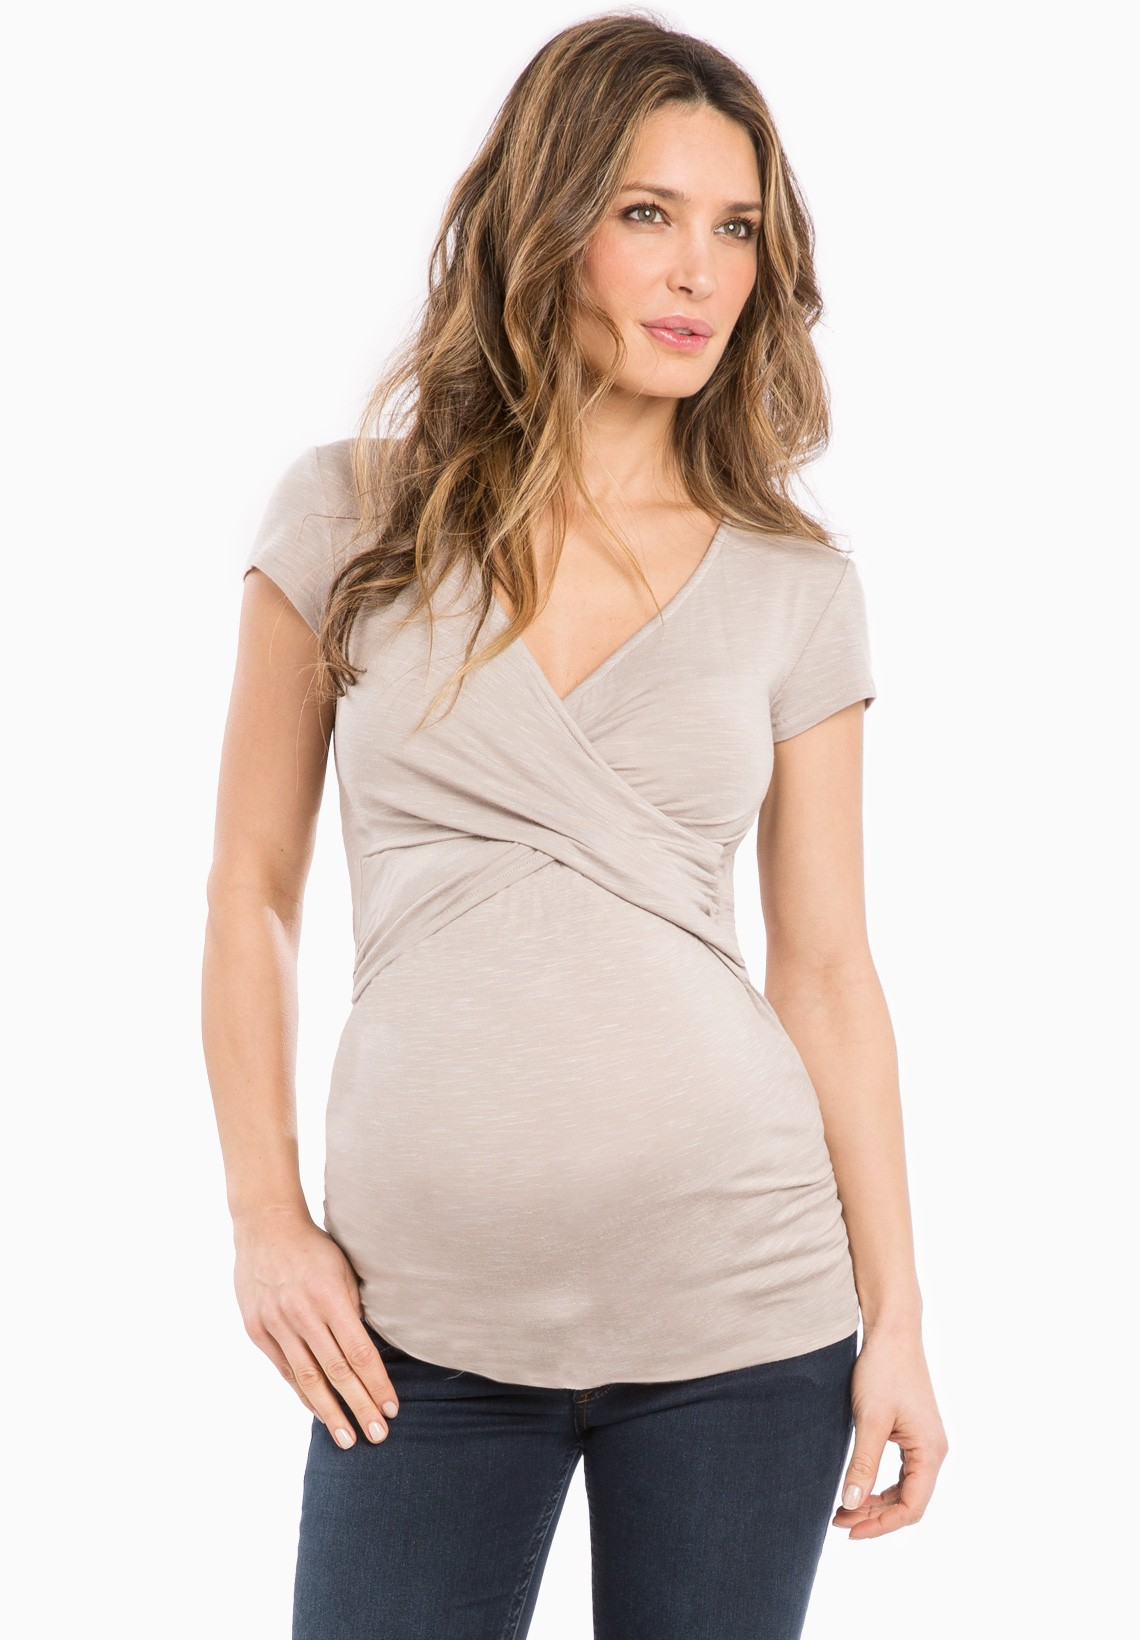 Dress up or go casual with our terrific collection of designer maternity tops at BellaBlu Maternity. We have warm weather sleeveless shirts, cute maternity tanks, short-sleeved pregnancy shirts for work or play and long-sleeved shirts for cold weather months.